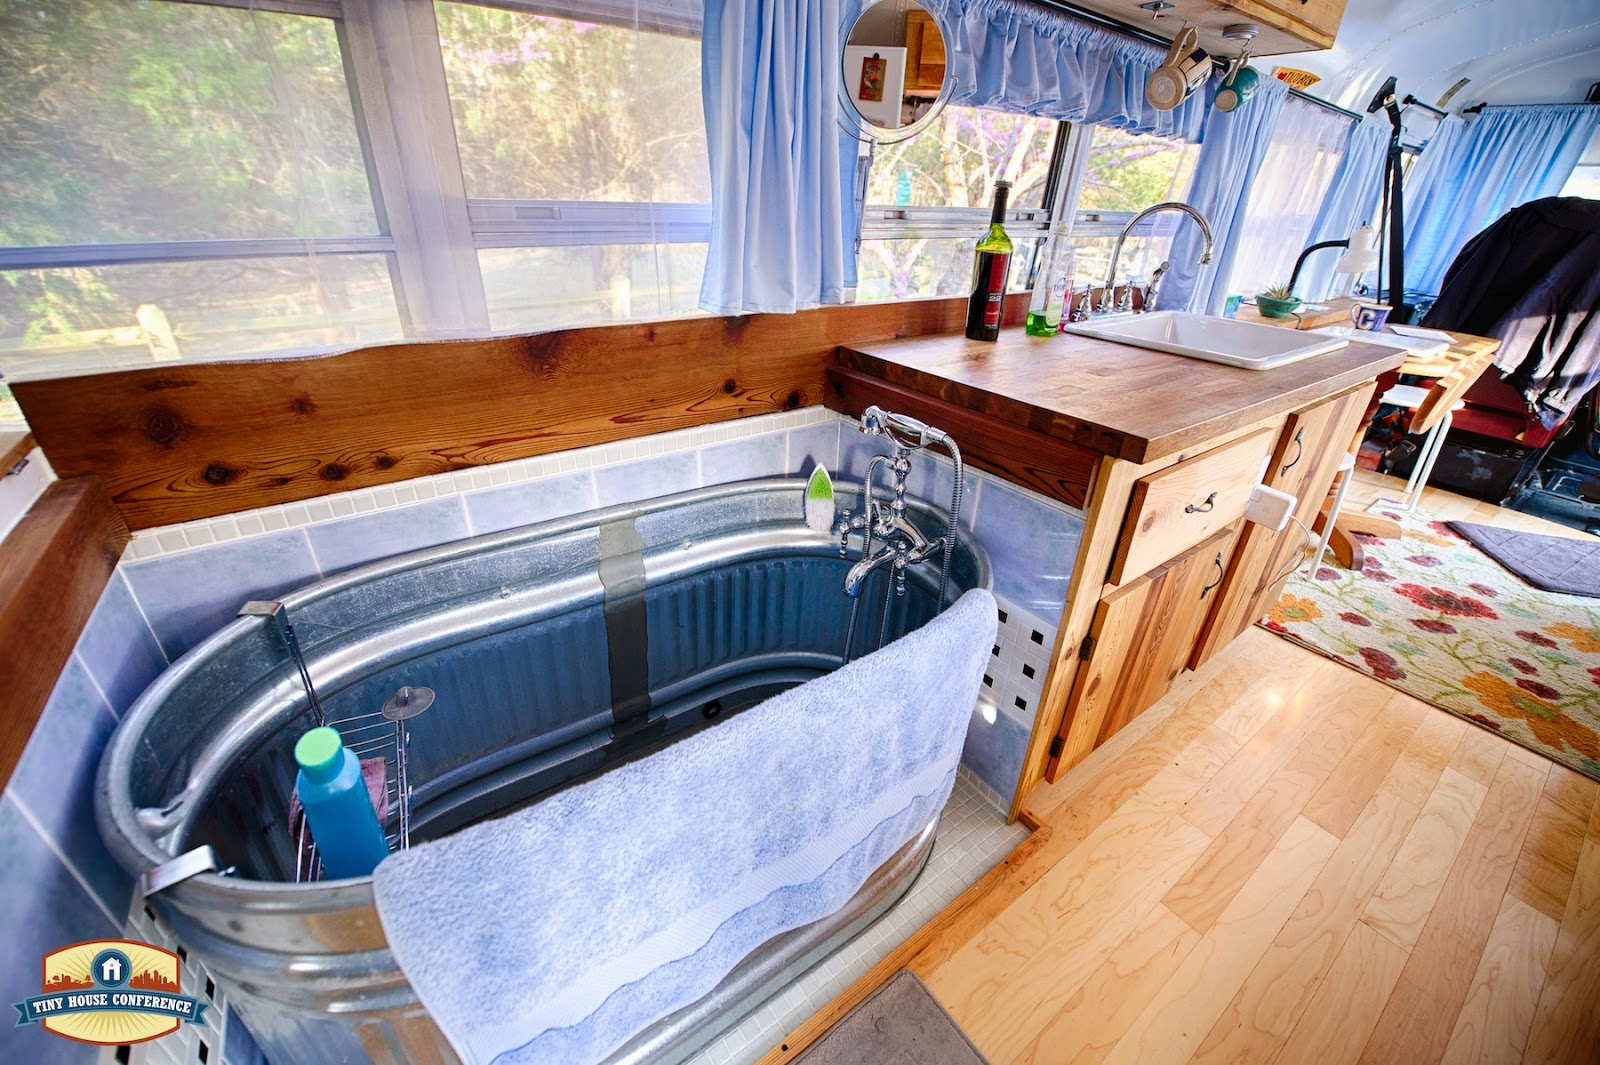 The Tiny House Conference Photos by Christopher Tack Just Right Bus  Living with a Water Trough Bathtub